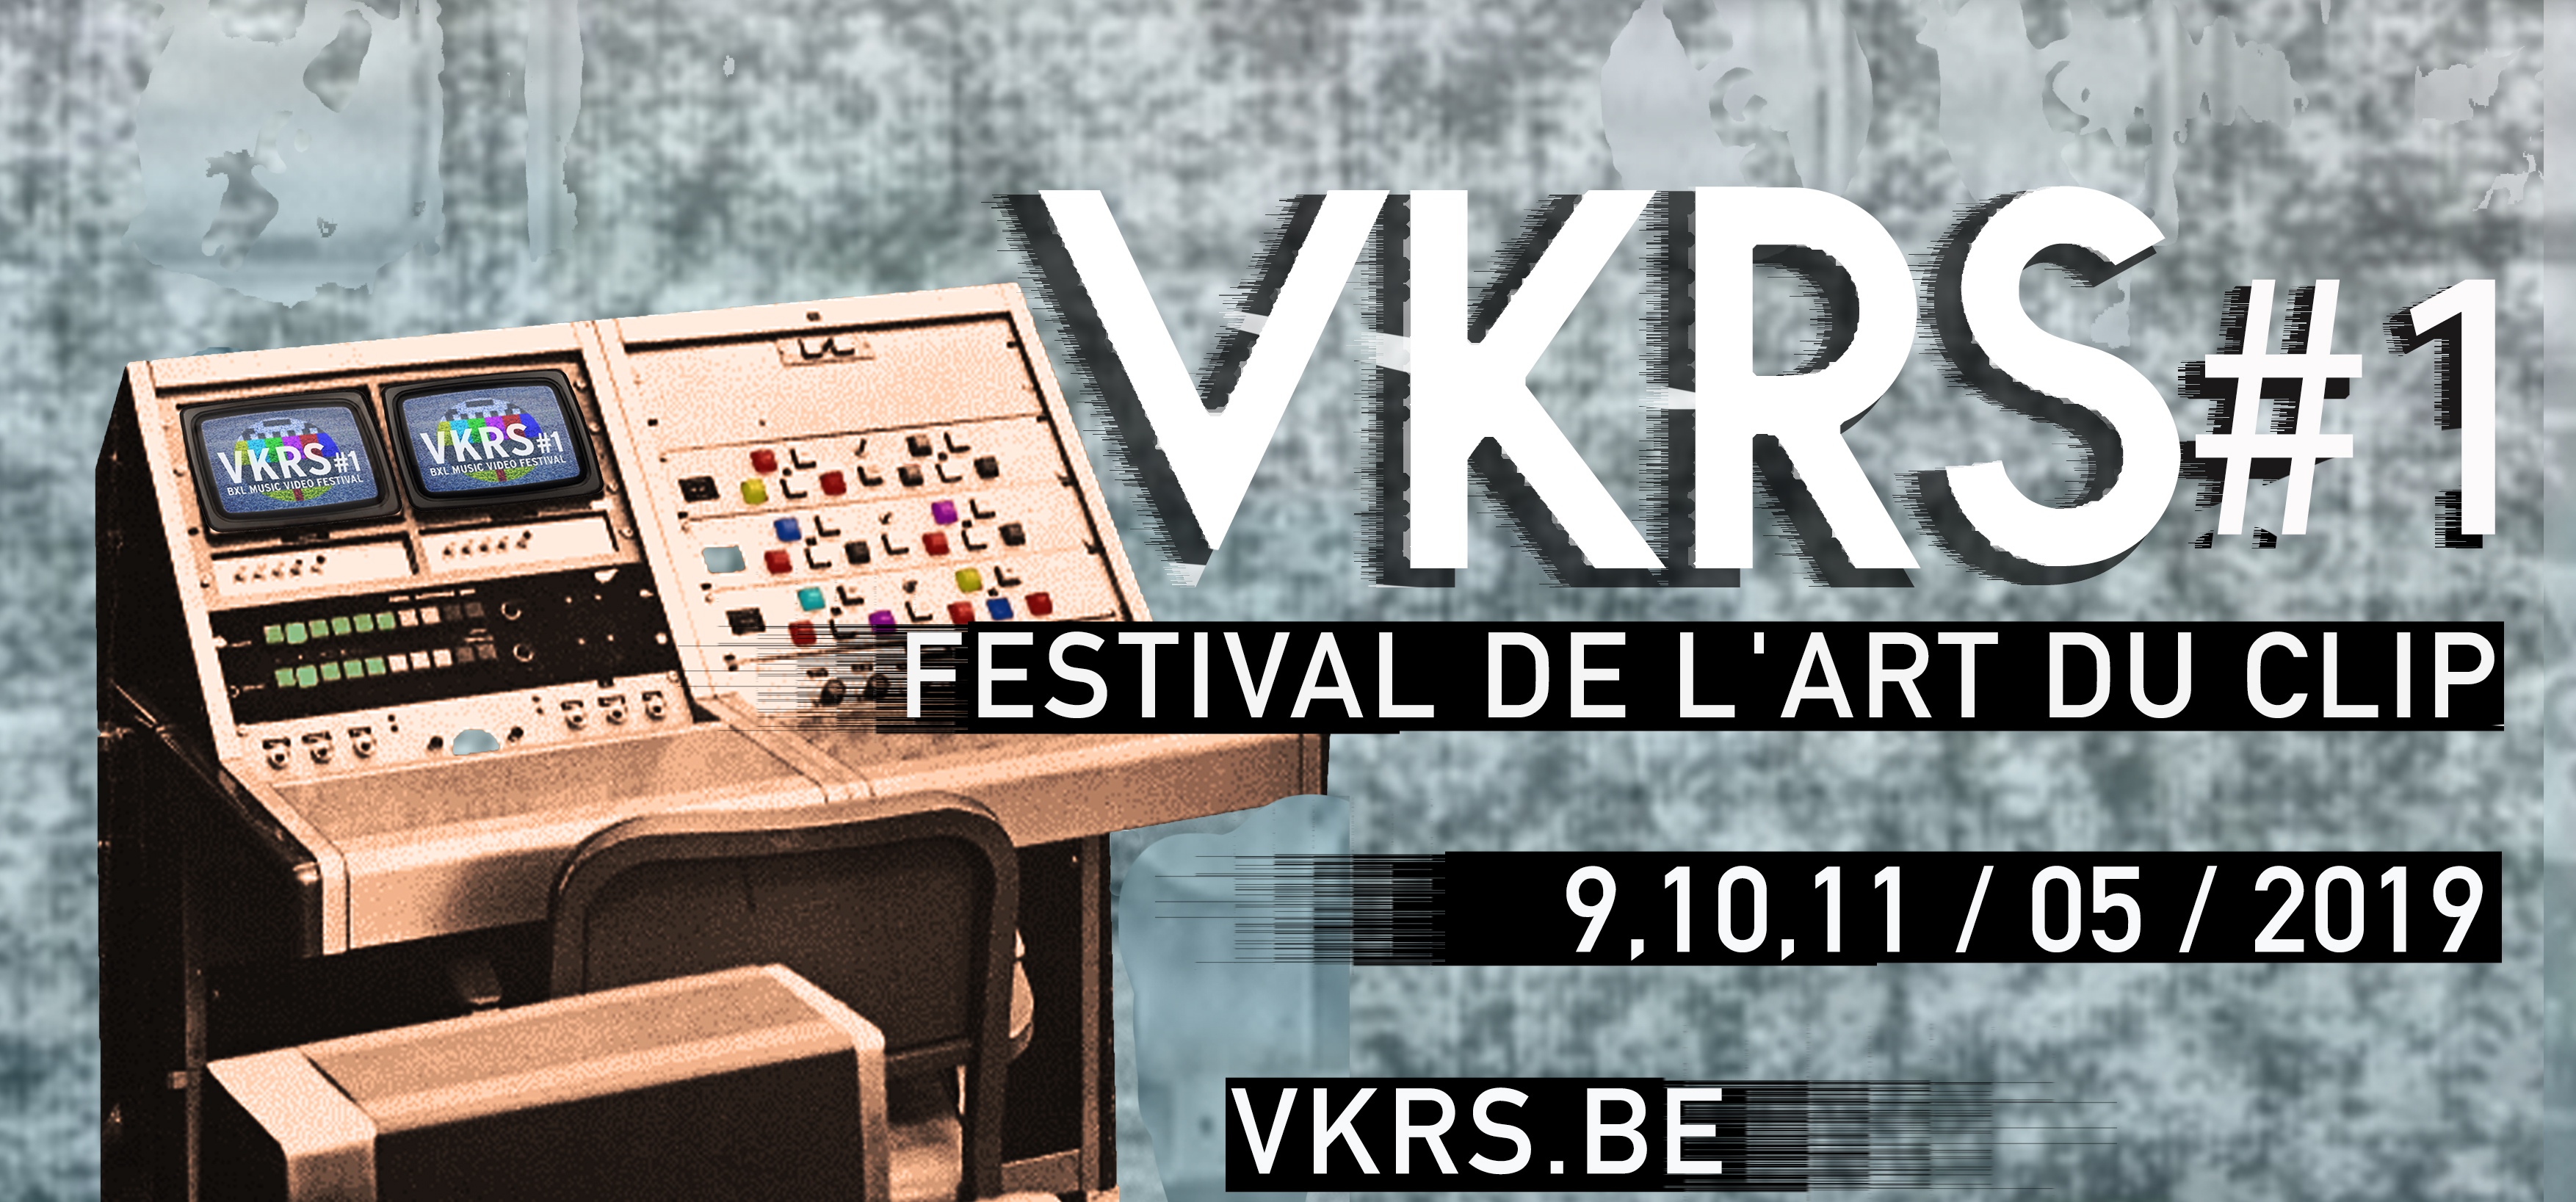 VKRS: Belgium (finally) has a video clip festival